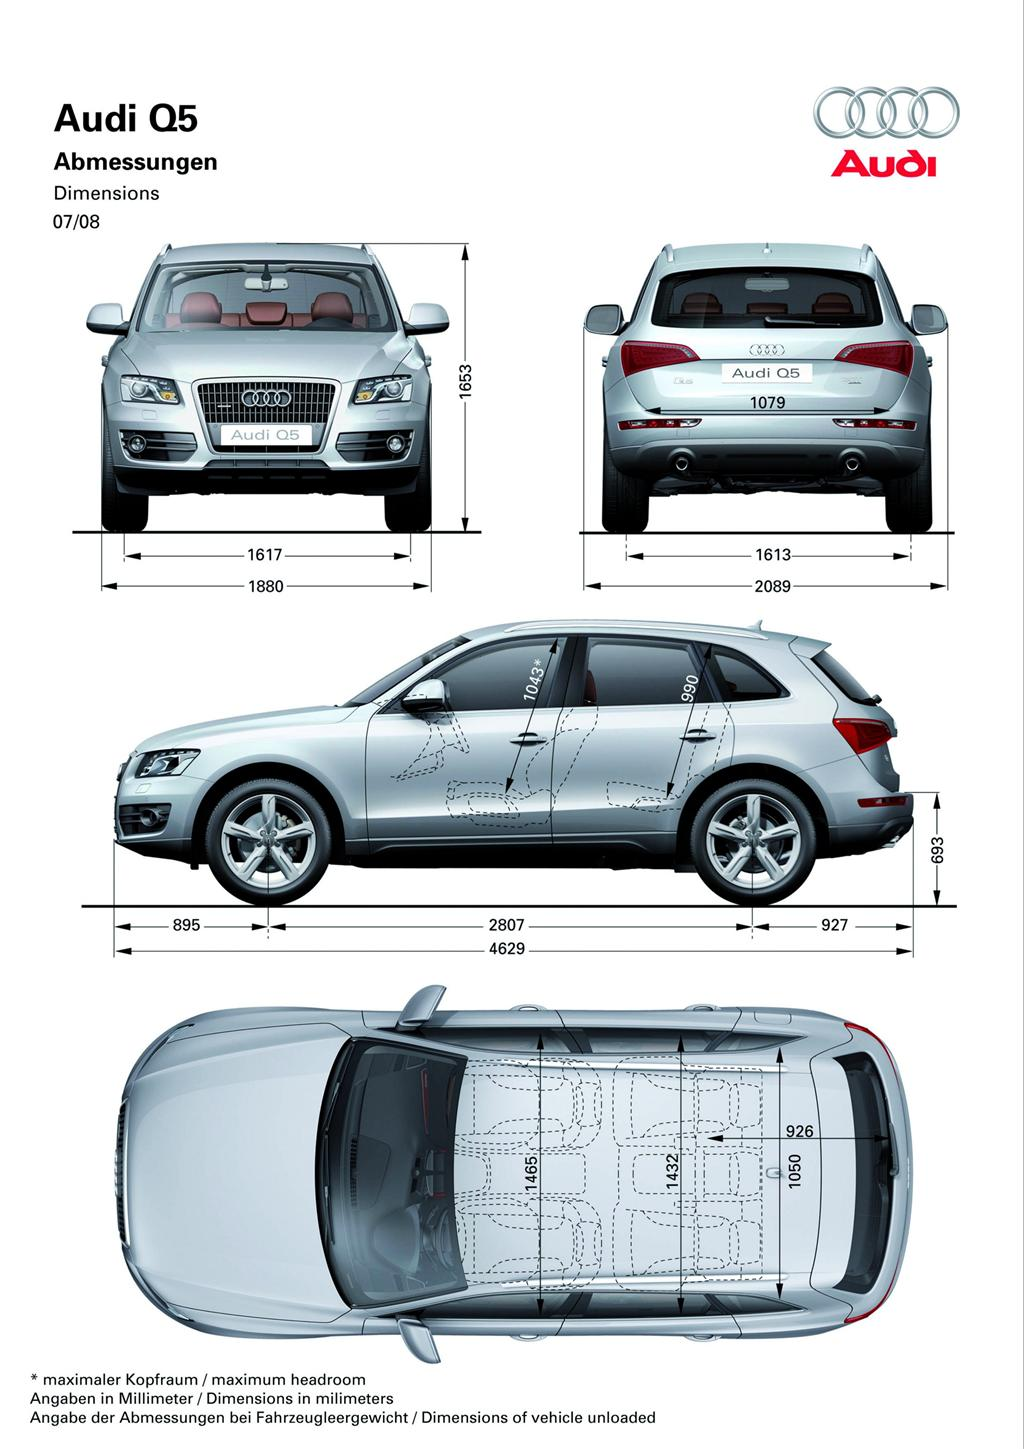 2009 Audi Q5 News and Information | conceptcarz.com